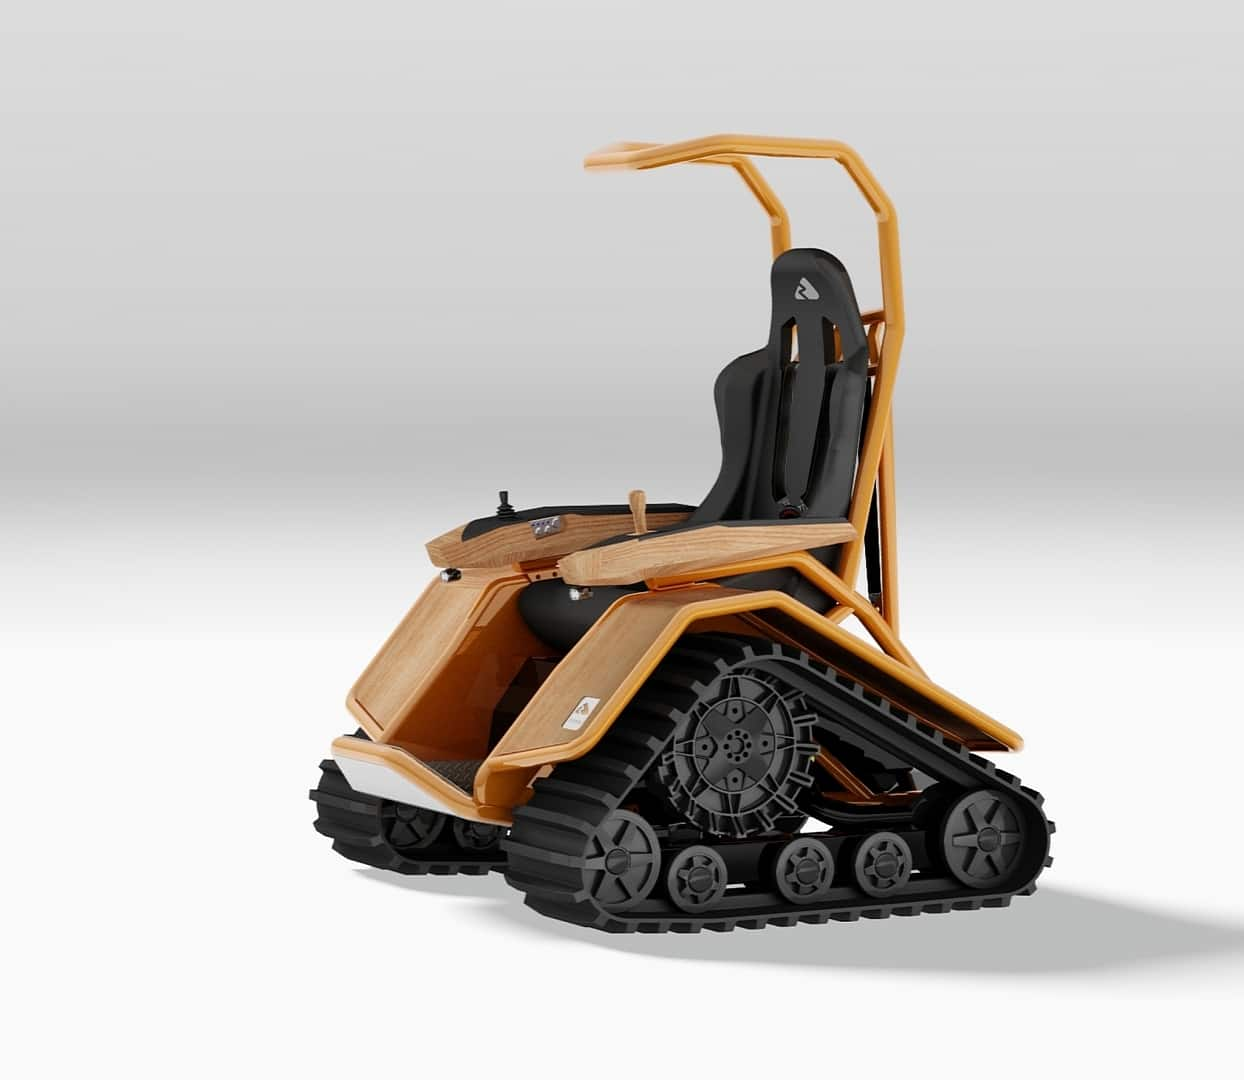 tank chair wheelchair covers for plastic stacking chairs the ziesel is a tiny off road vehicle that packs serious